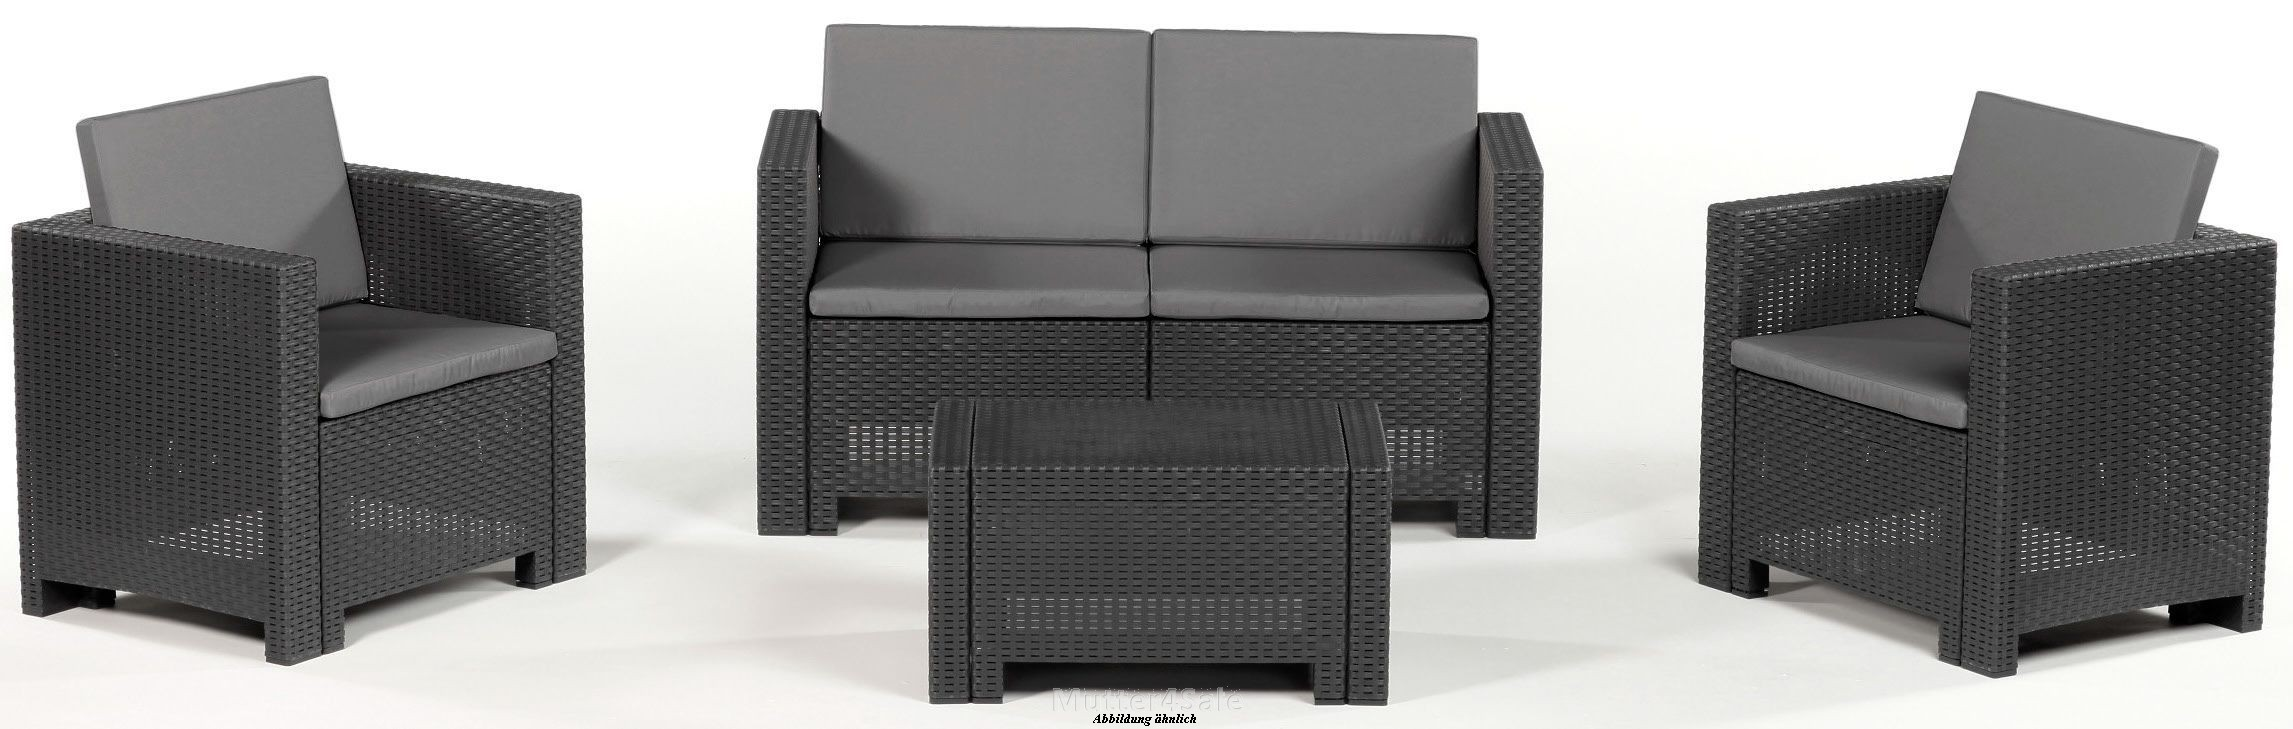 allibert sitzgruppe cannes lounge set gartenm bel poly rattan grau braun ebay. Black Bedroom Furniture Sets. Home Design Ideas